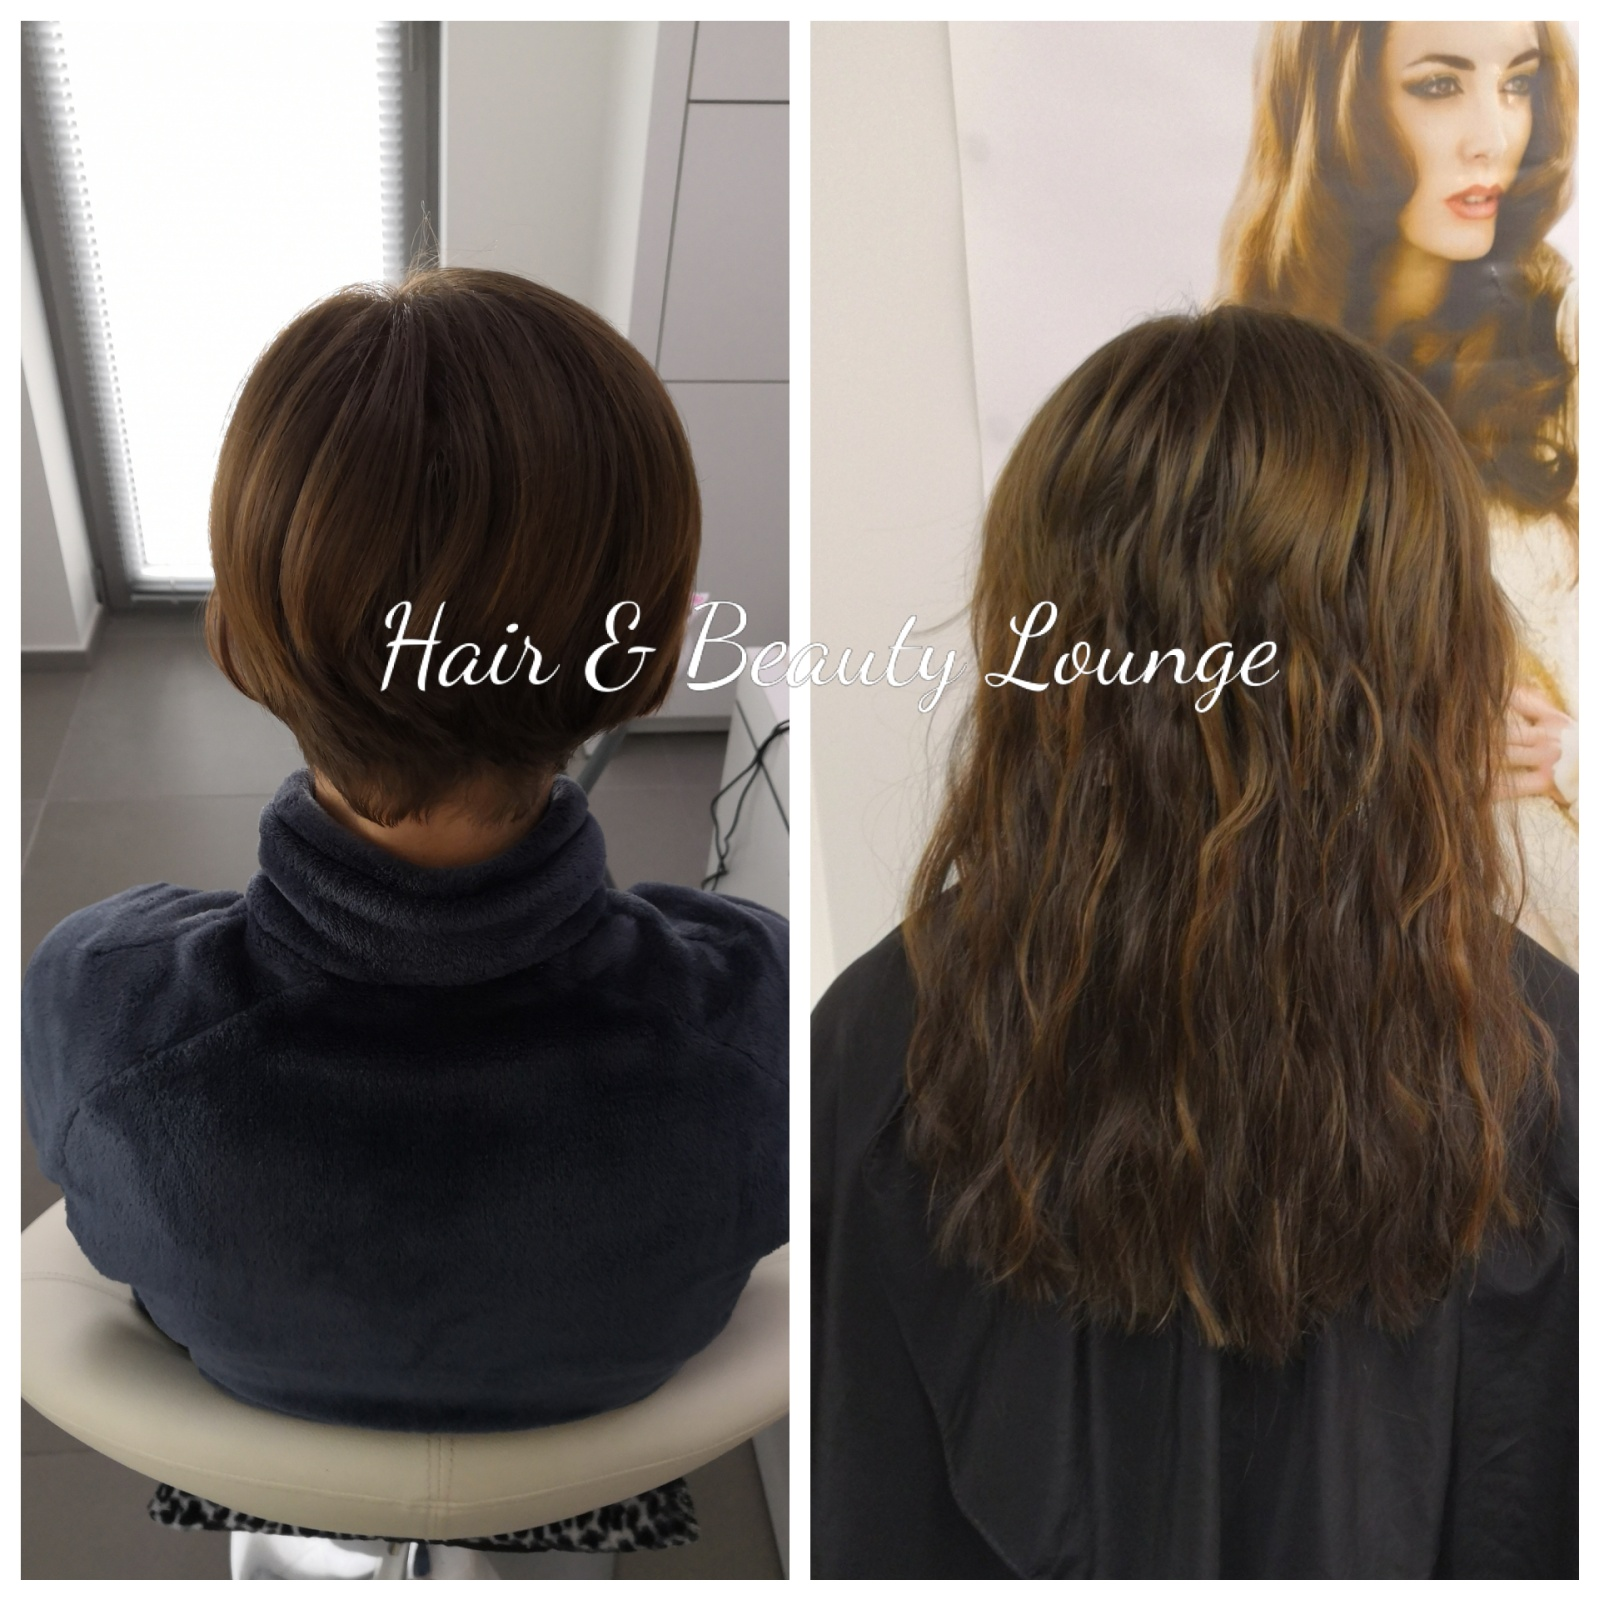 Hairextensions 16-07-2019